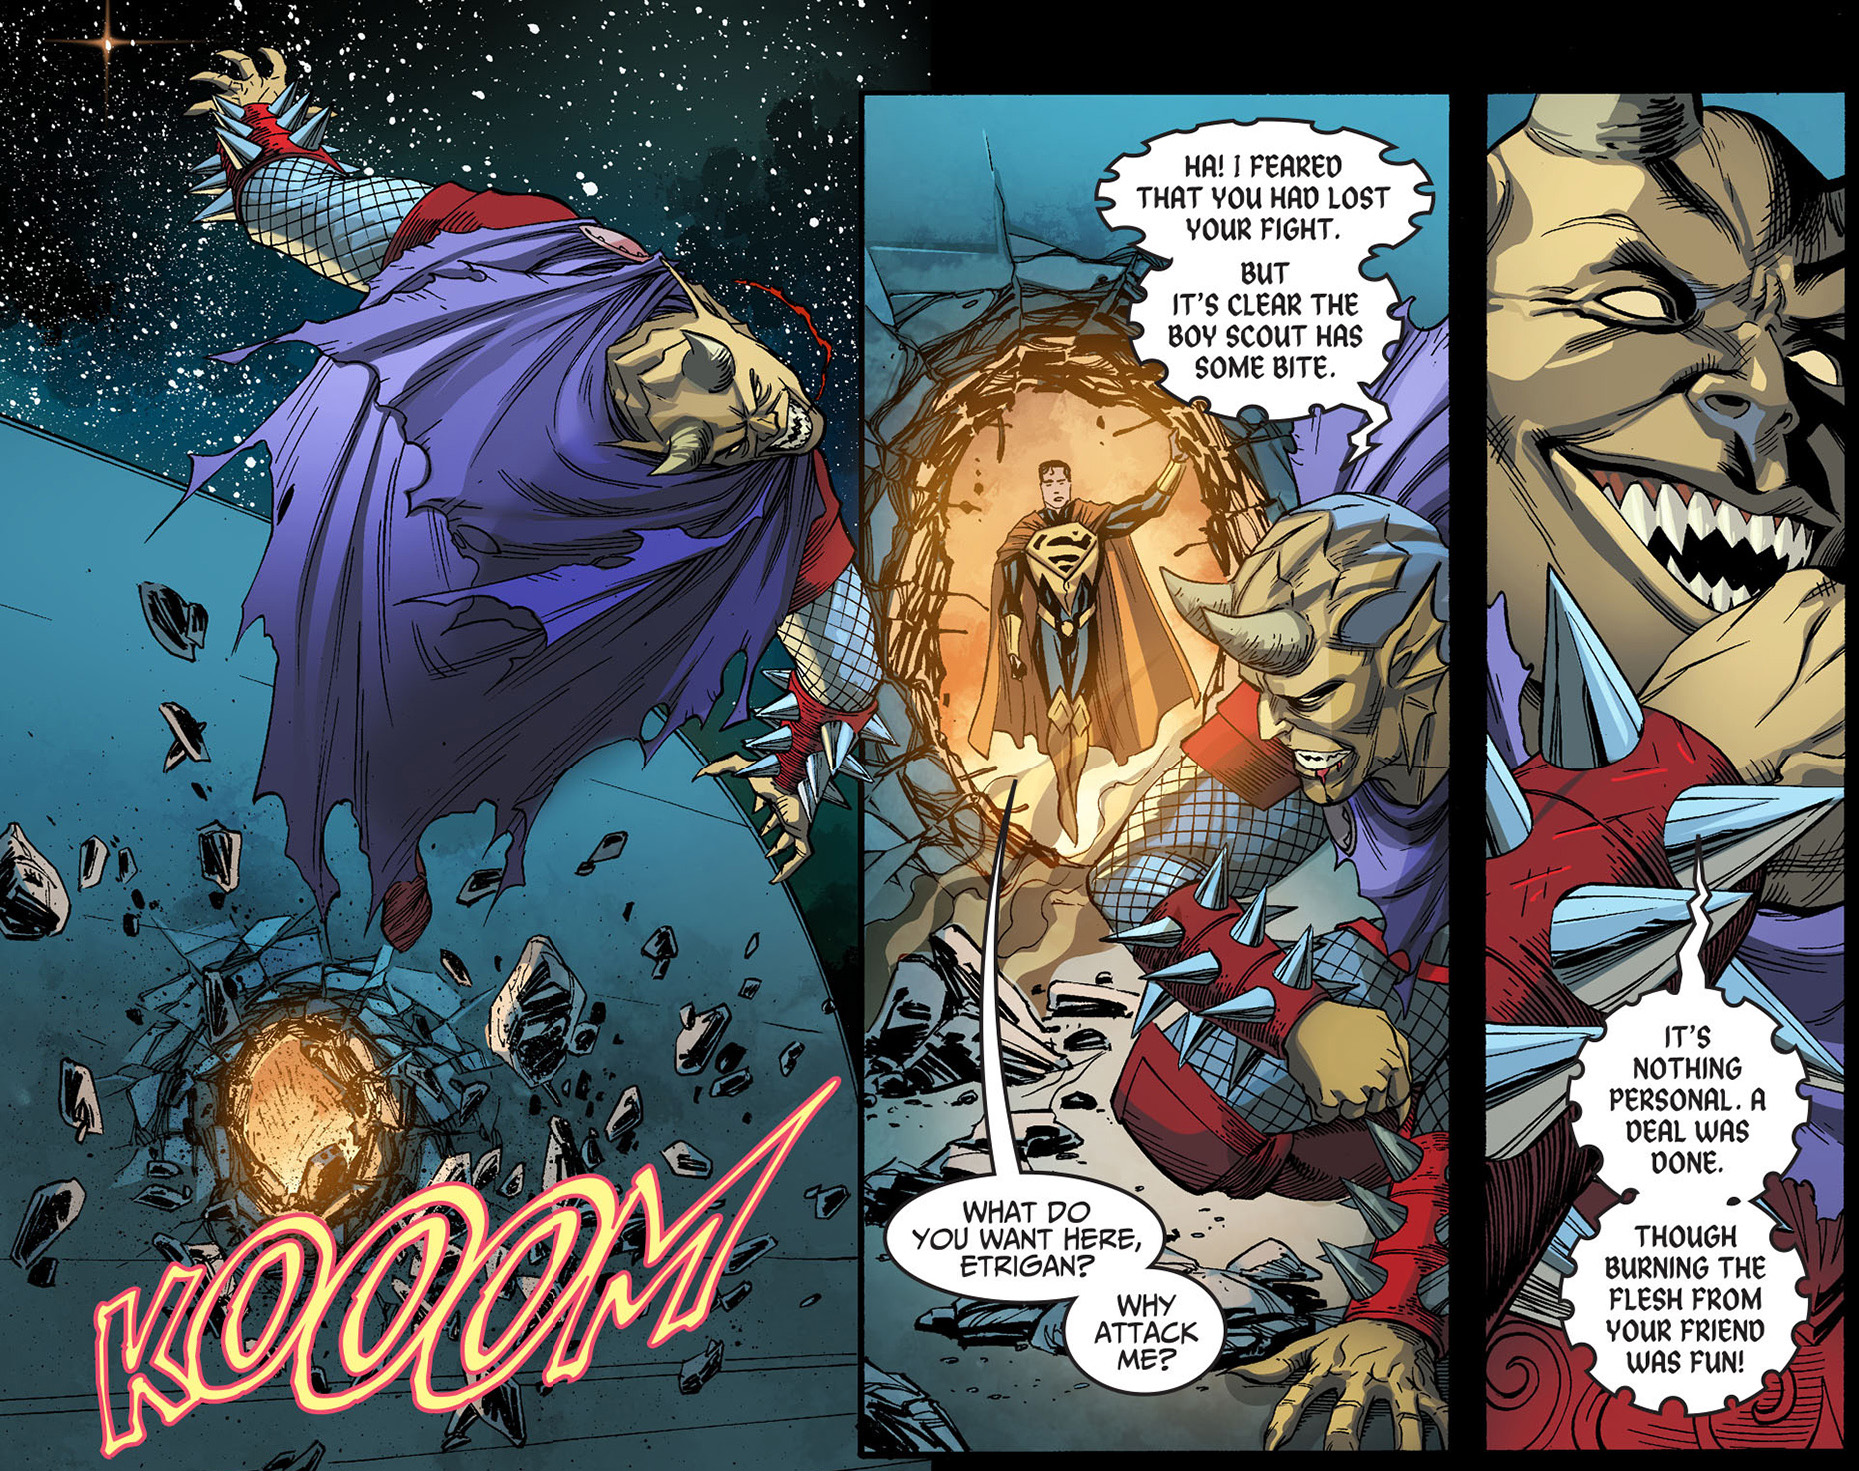 superman vs etrigan (injustice gods among us)